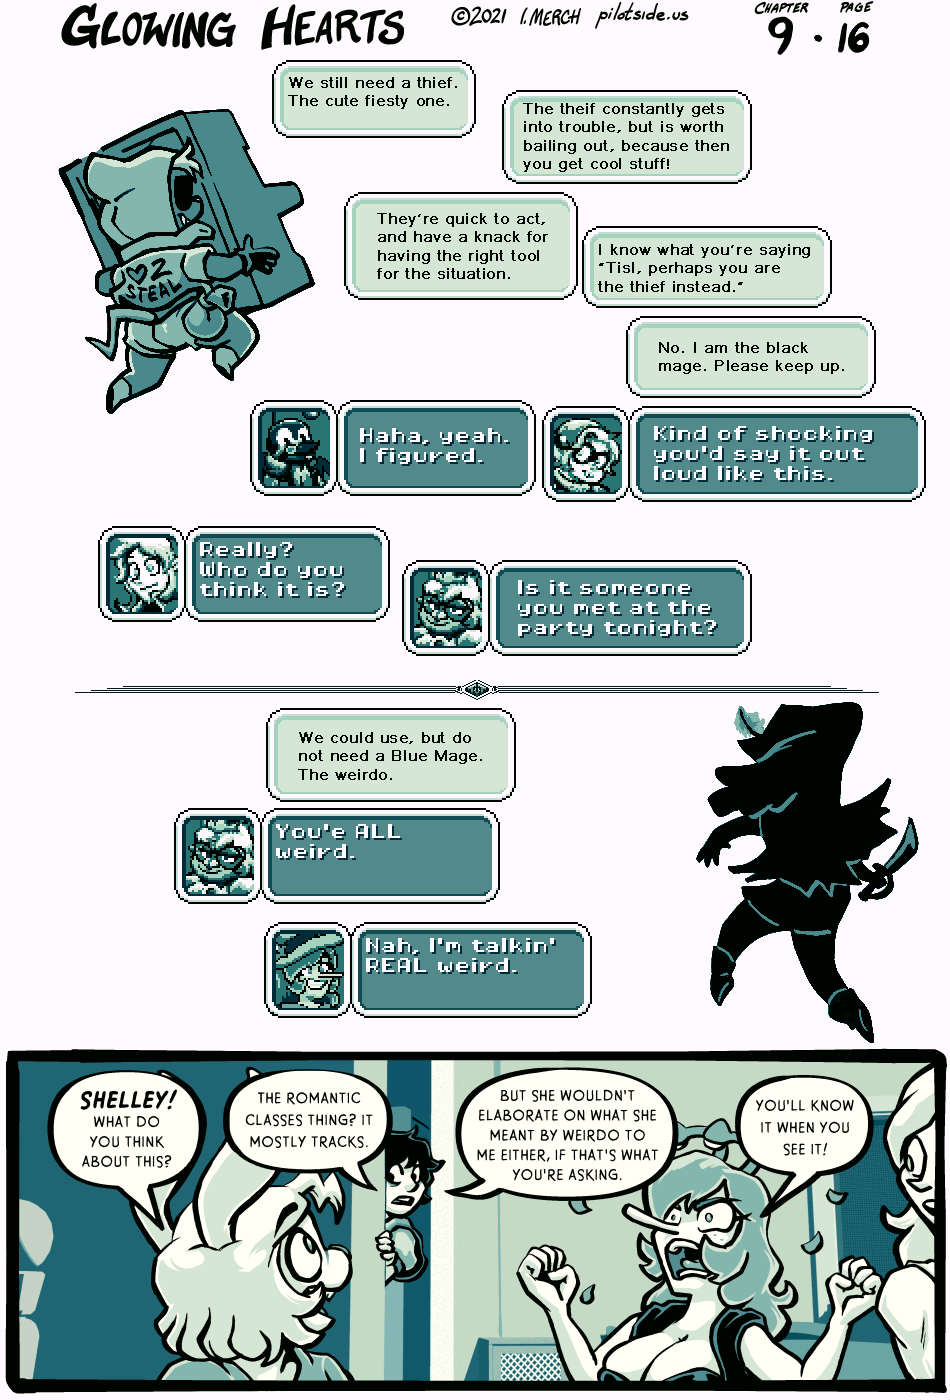 I legit on the fence about the blue mage even making it into the comic. Might take a while, but the story sort of veered away from where it was going to go originally.